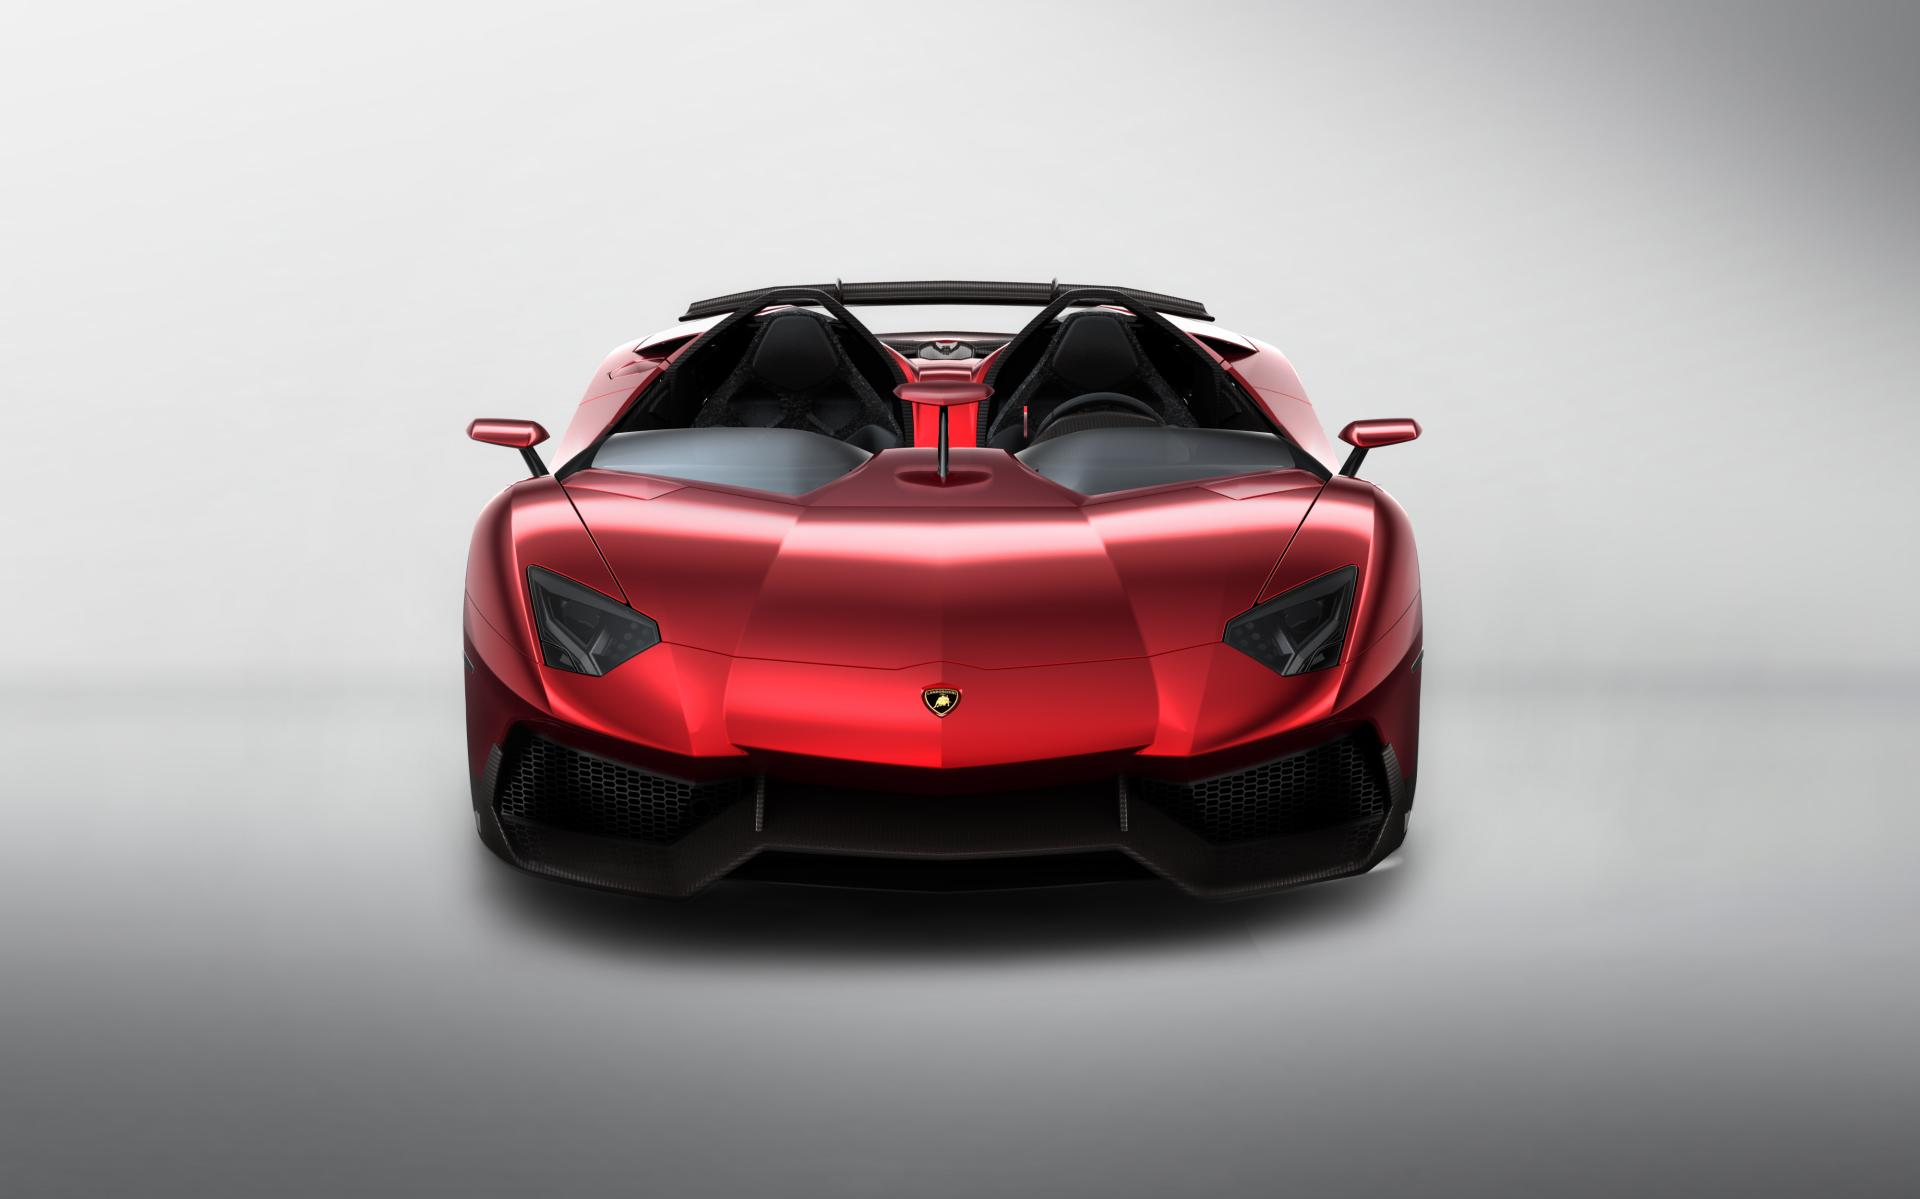 2012 Lamborghini Aventador J News And Information Research And Pricing